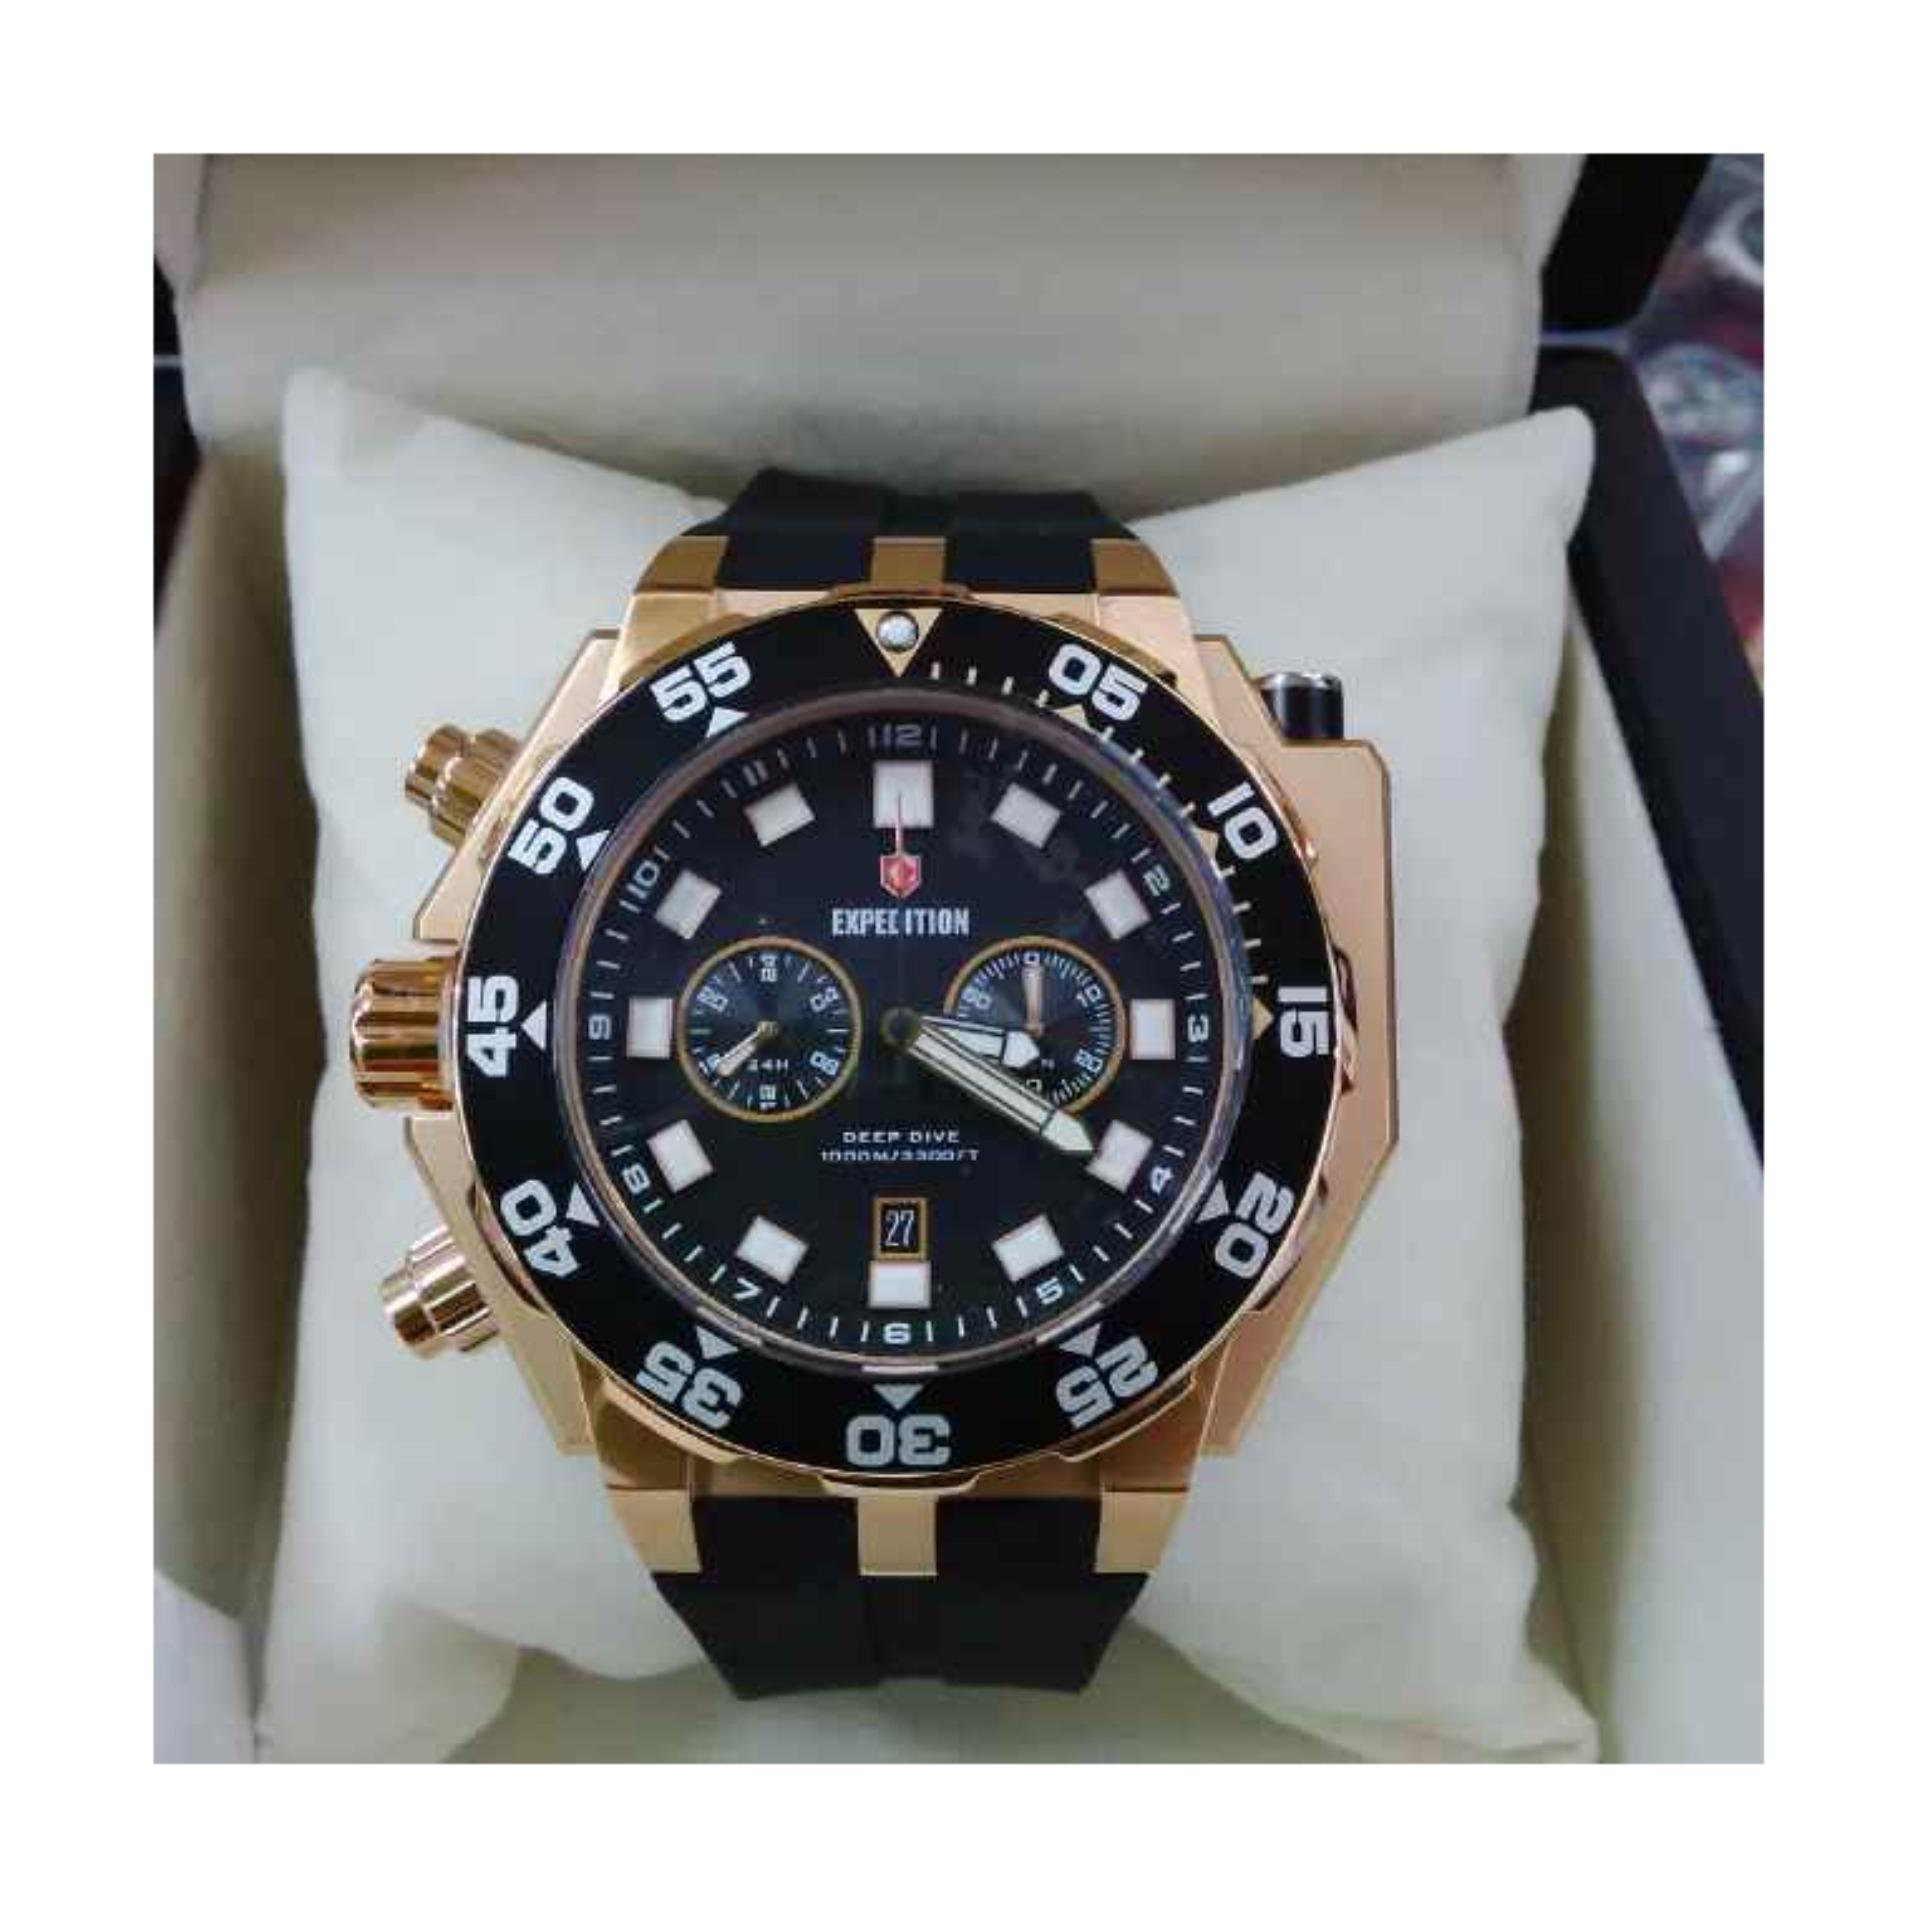 Expedition 6641 Rose Gold Jam Tangan Diving Pria Original